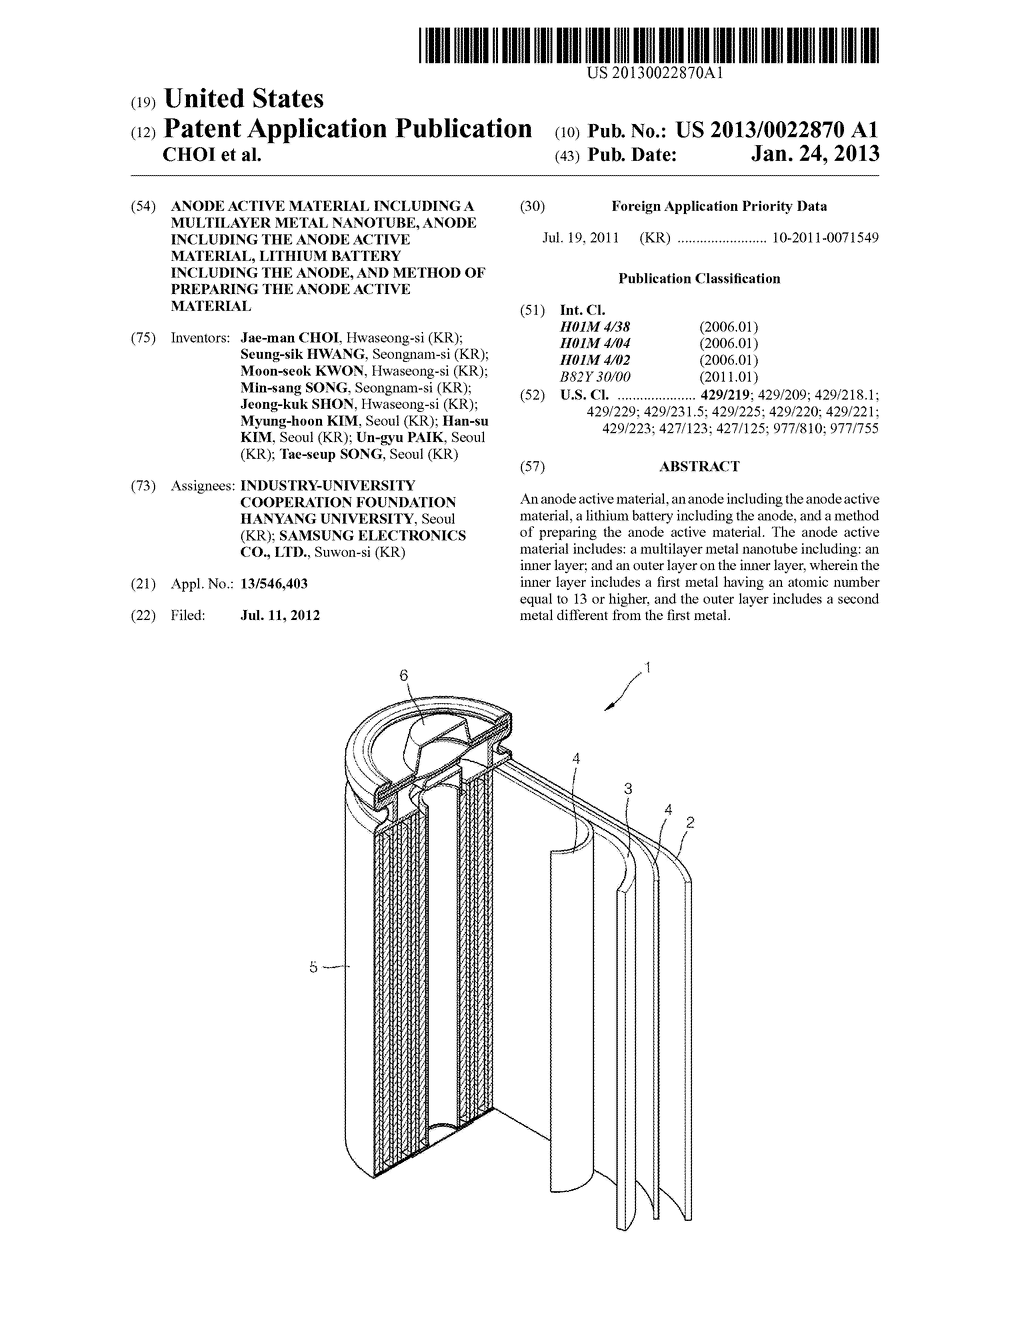 ANODE ACTIVE MATERIAL INCLUDING A MULTILAYER METAL NANOTUBE, ANODE     INCLUDING THE ANODE ACTIVE MATERIAL, LITHIUM BATTERY INCLUDING THE ANODE,     AND METHOD OF PREPARING THE ANODE ACTIVE MATERIAL - diagram, schematic, and image 01